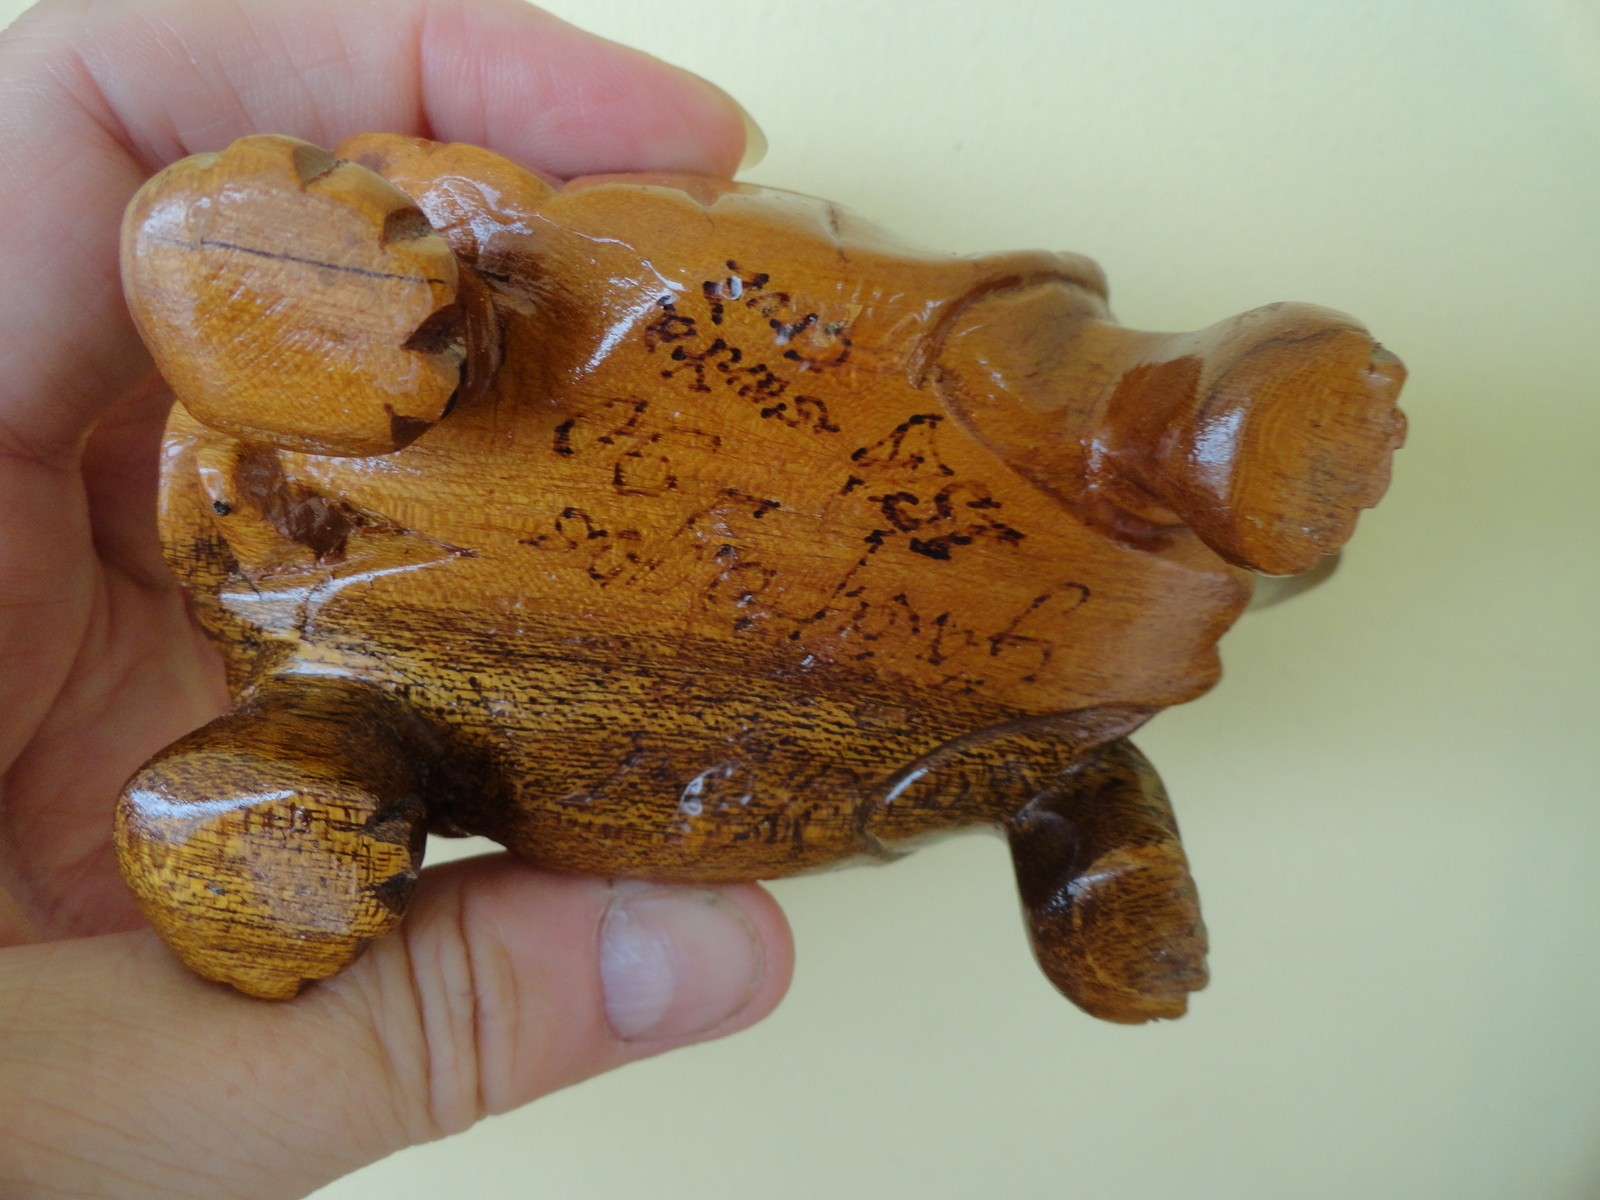 Tortoise Carving in Wood Brown Sculpture Galapagos islands 1990 Santa Cruz